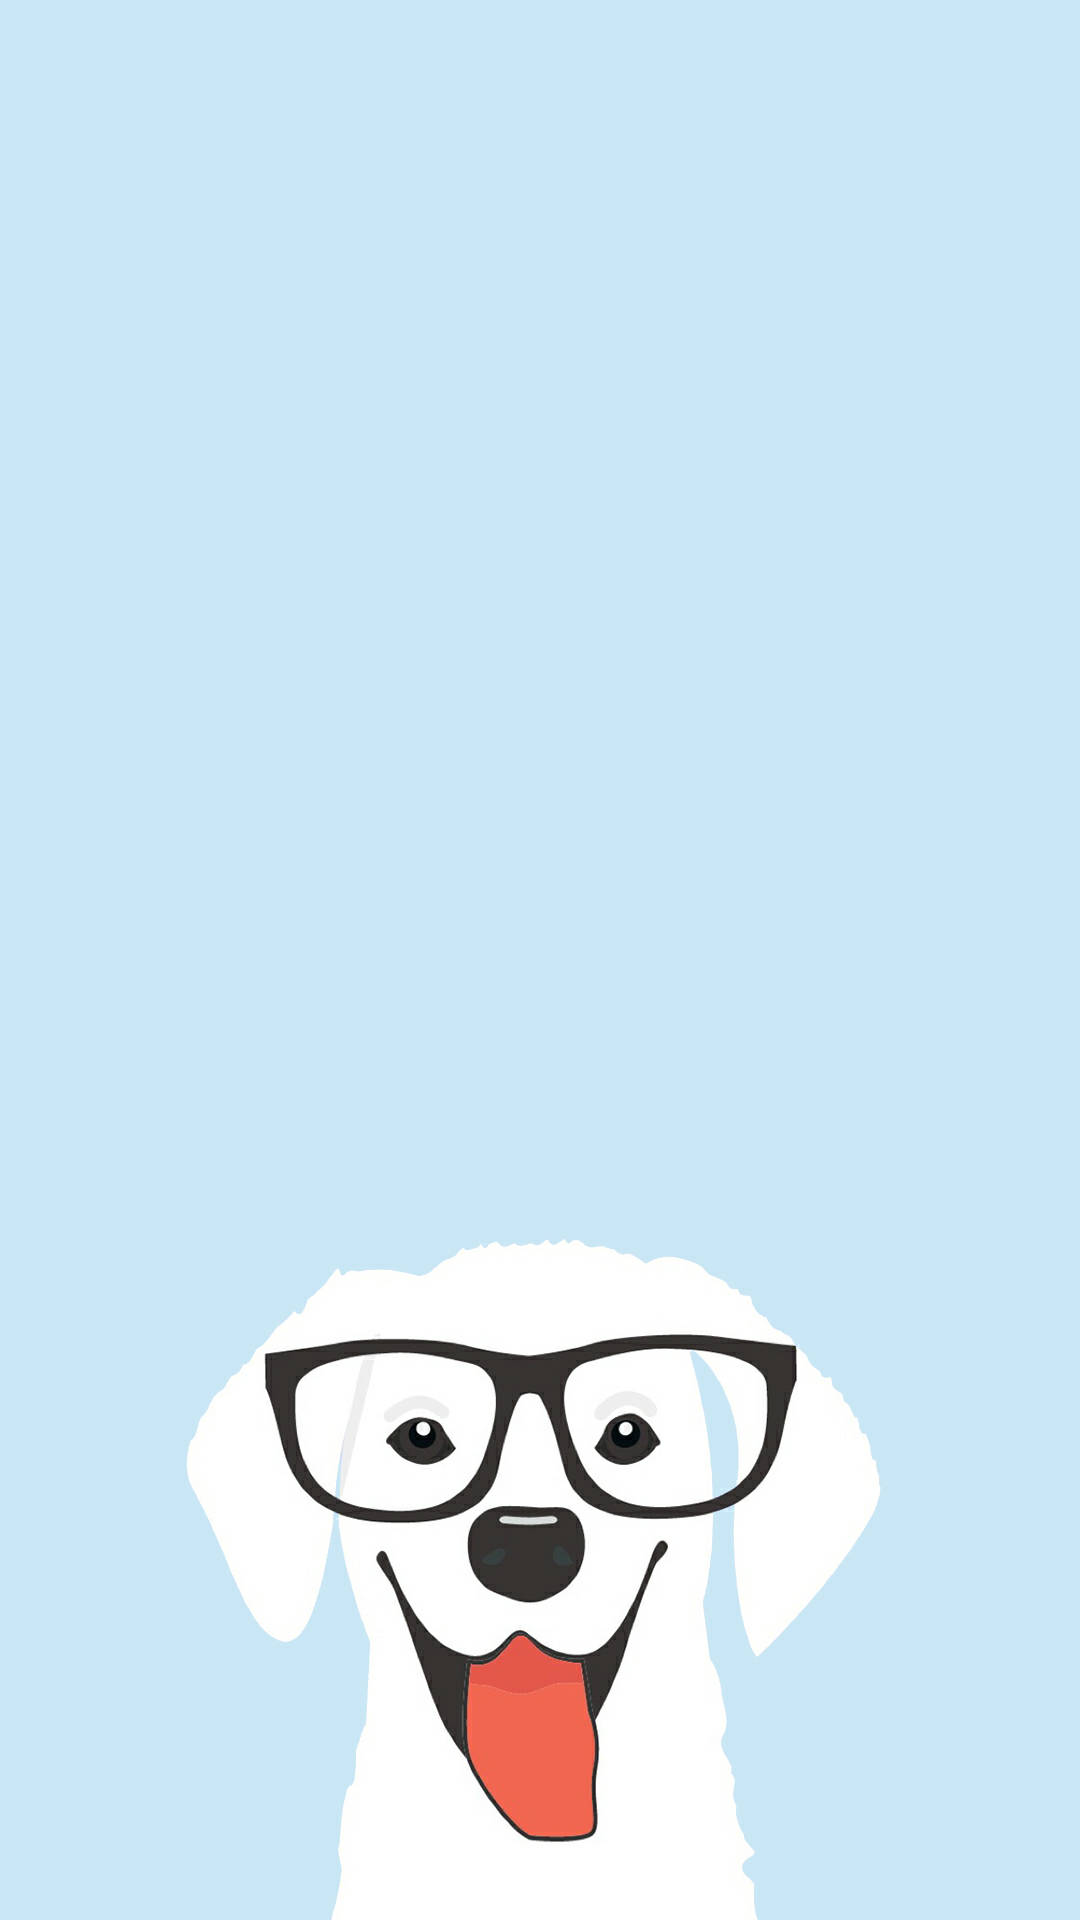 Iphone 6 Cute Dog Cartoon Wallpaper